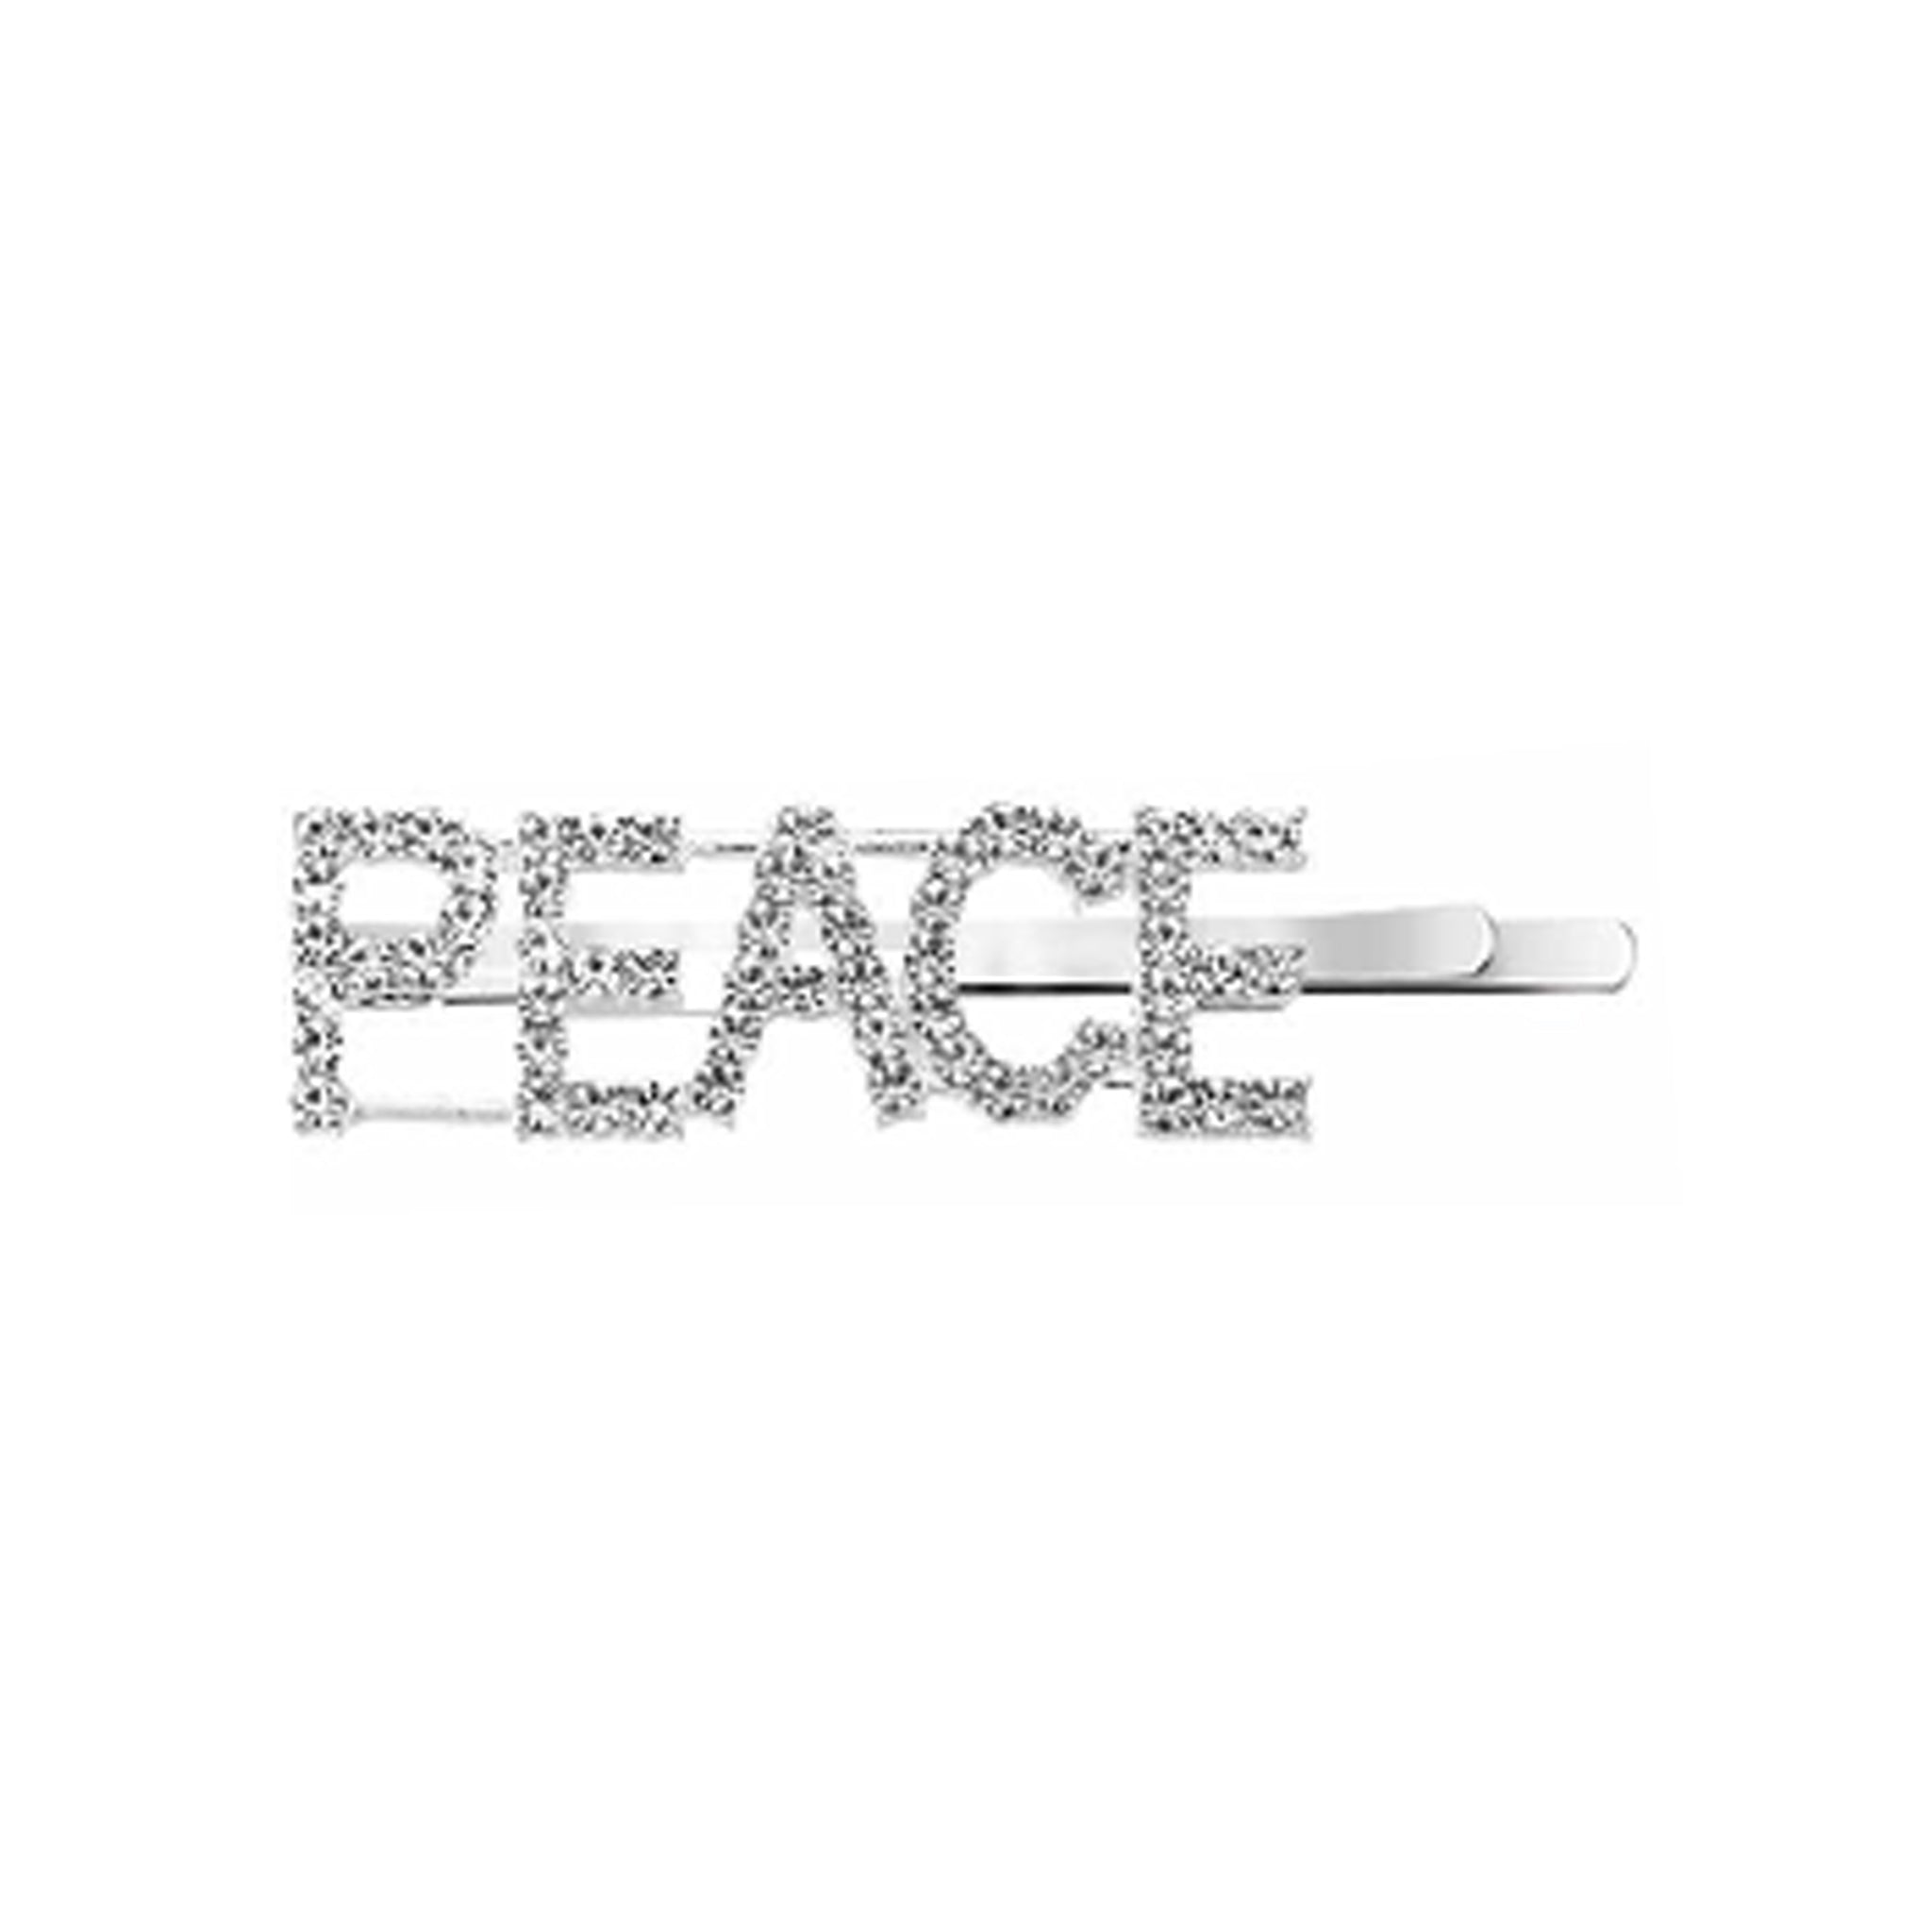 West Carolina PEACE Embellished Hair Clips for Women Fashion Vintage Hairpins Rhinestone Text Inspired Instagrammable Instagram